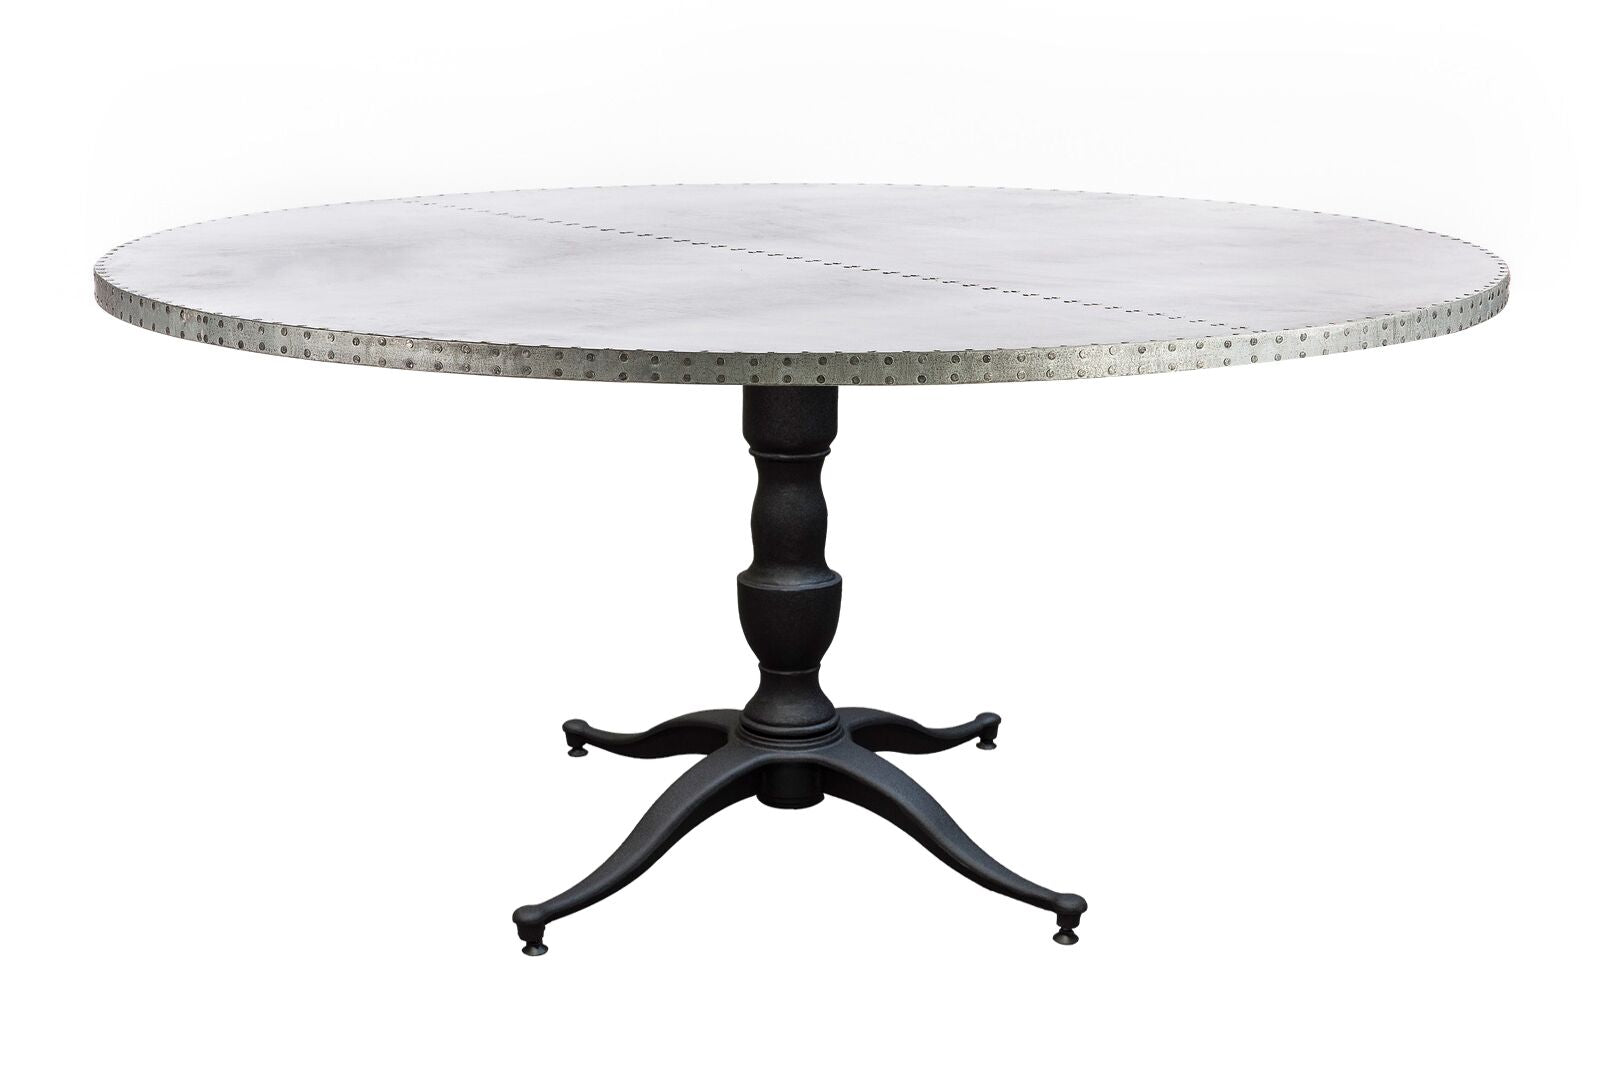 Zinc Round Tables | Francesca Table | CLASSIC | Black | 60"